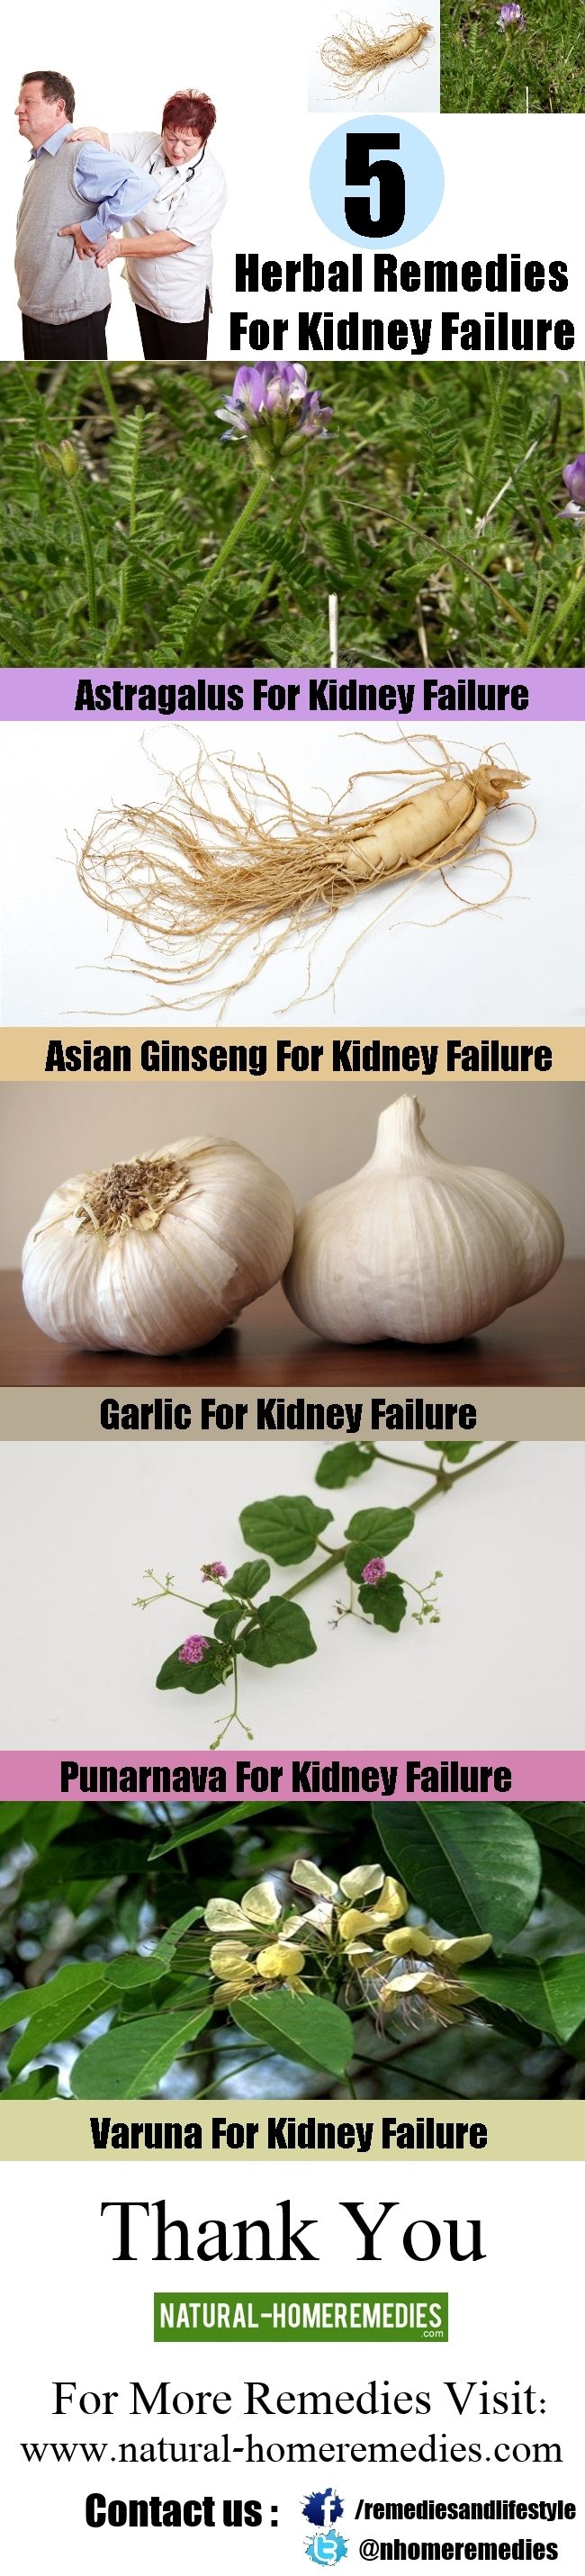 5 Herbal Remedies For Kidney Failure